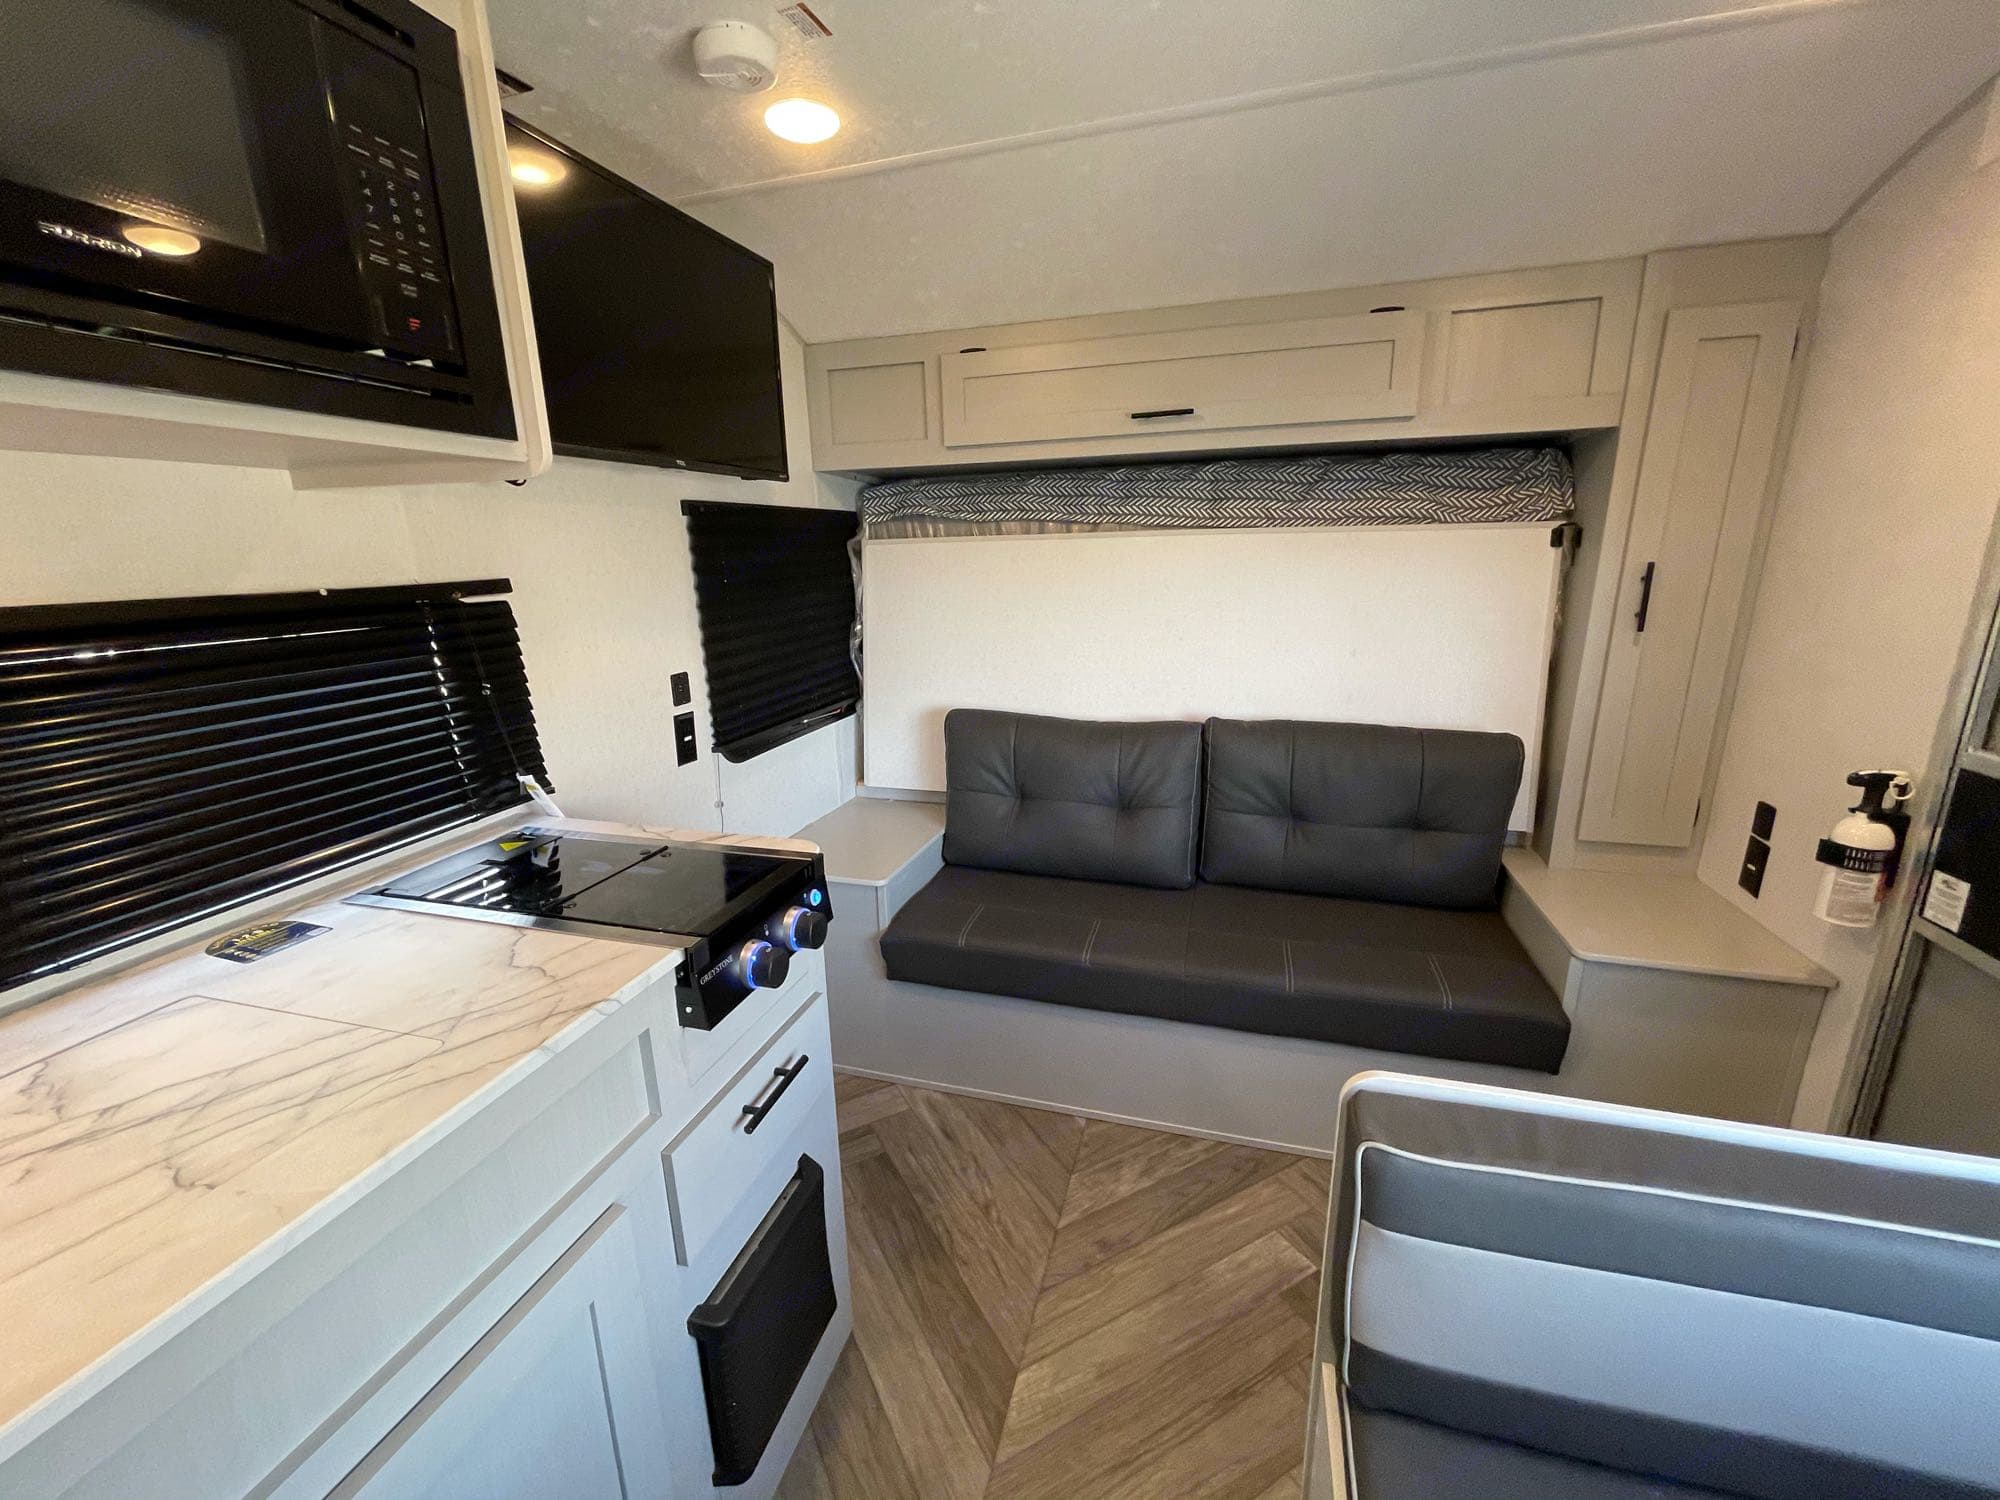 Murphy bed allows this 22ft travel trailer tons of open space for hanging out on a rainy day.. Forest River Salem 2021